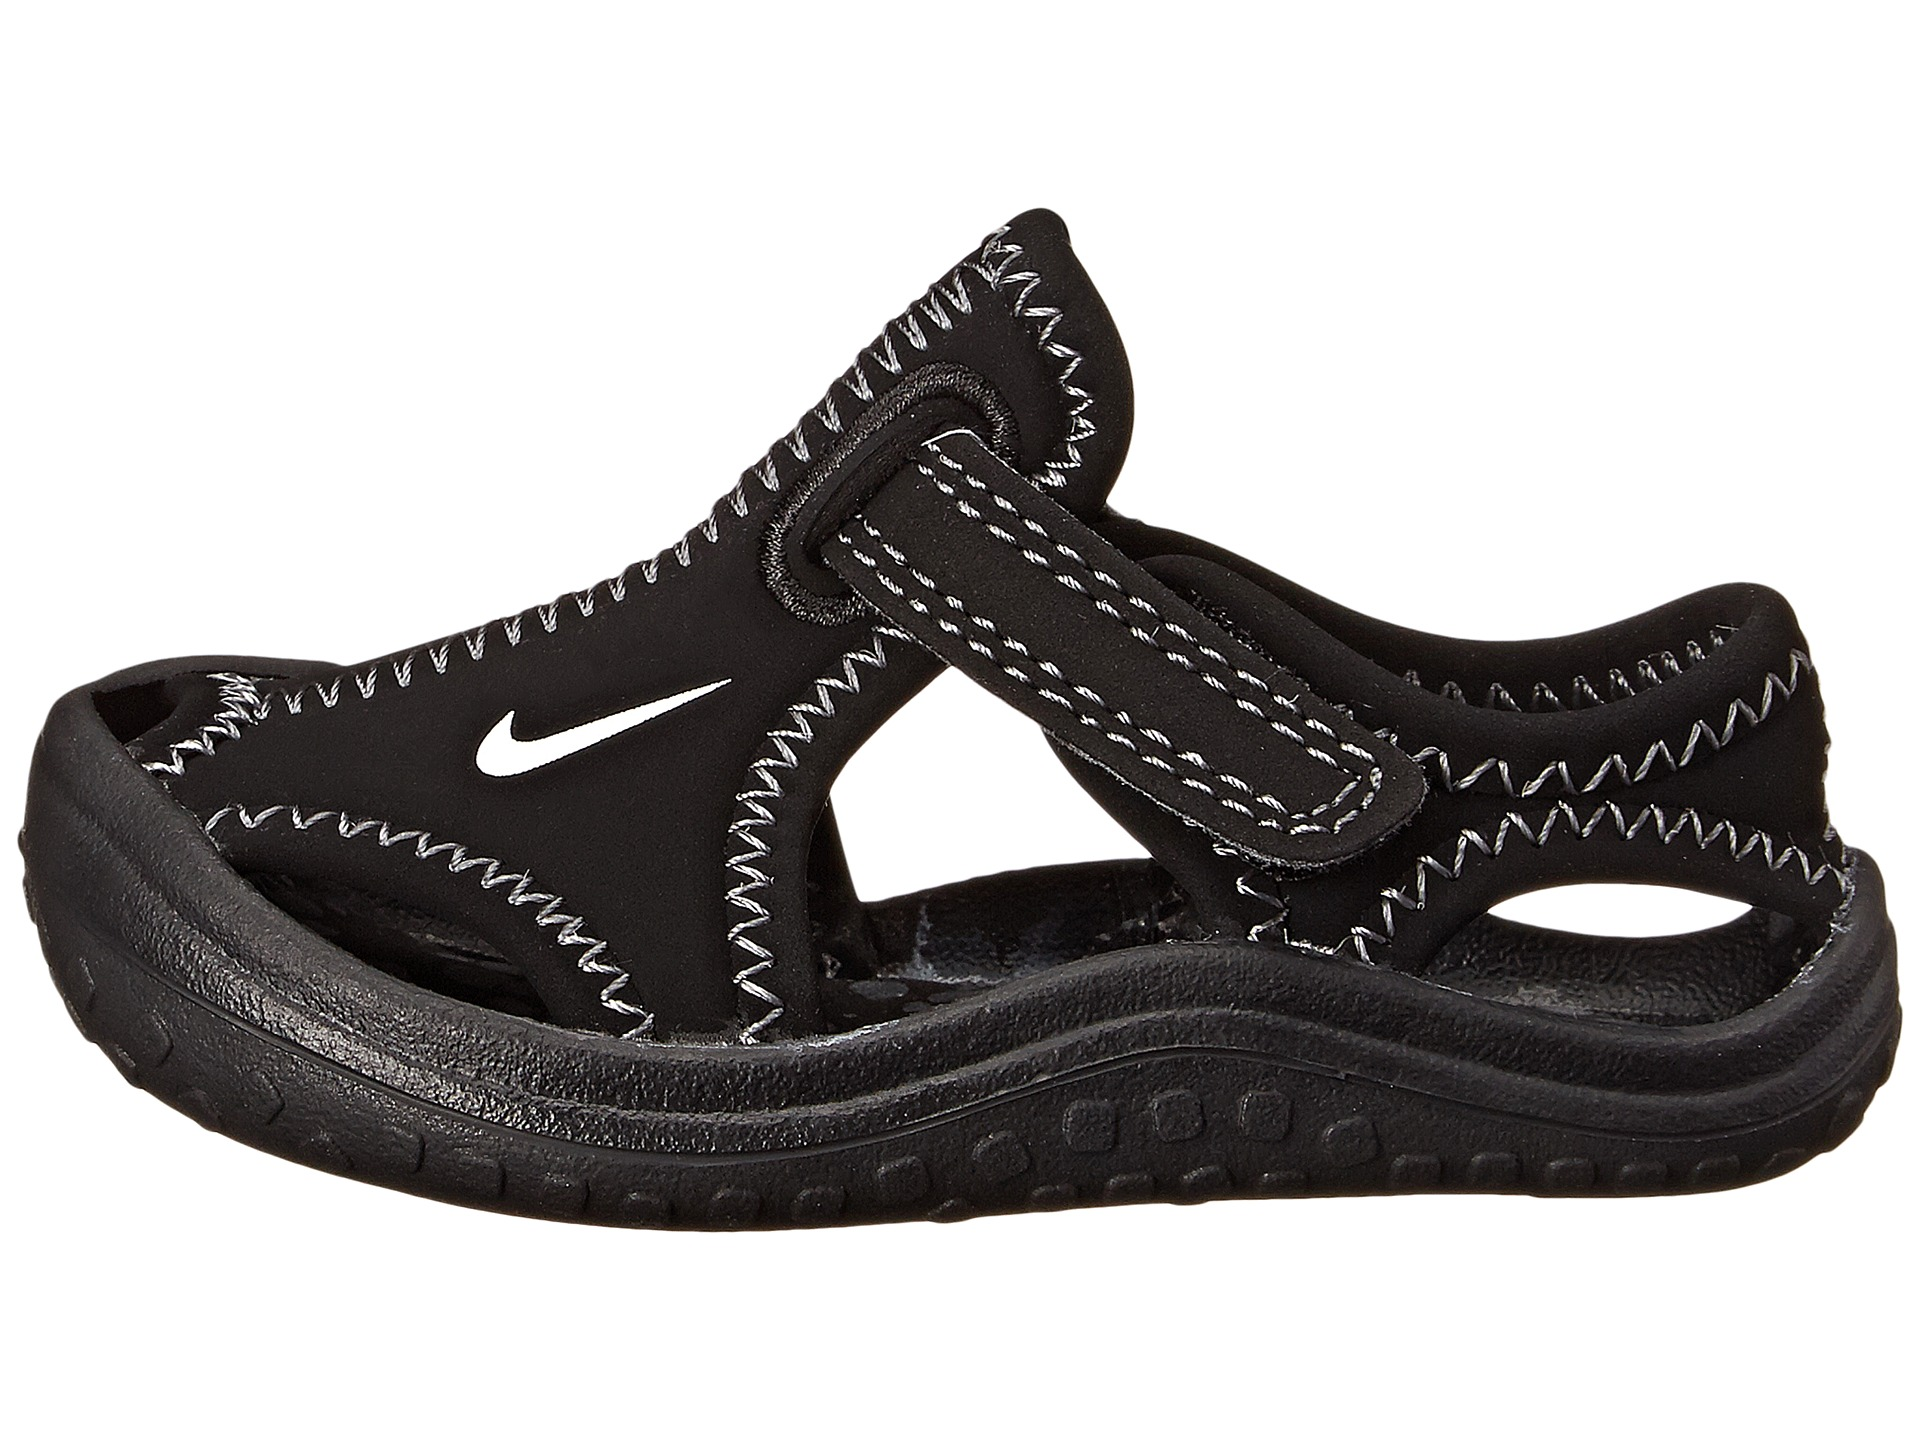 Nike Sunray Sandals For Men Nike Air Max Trainers